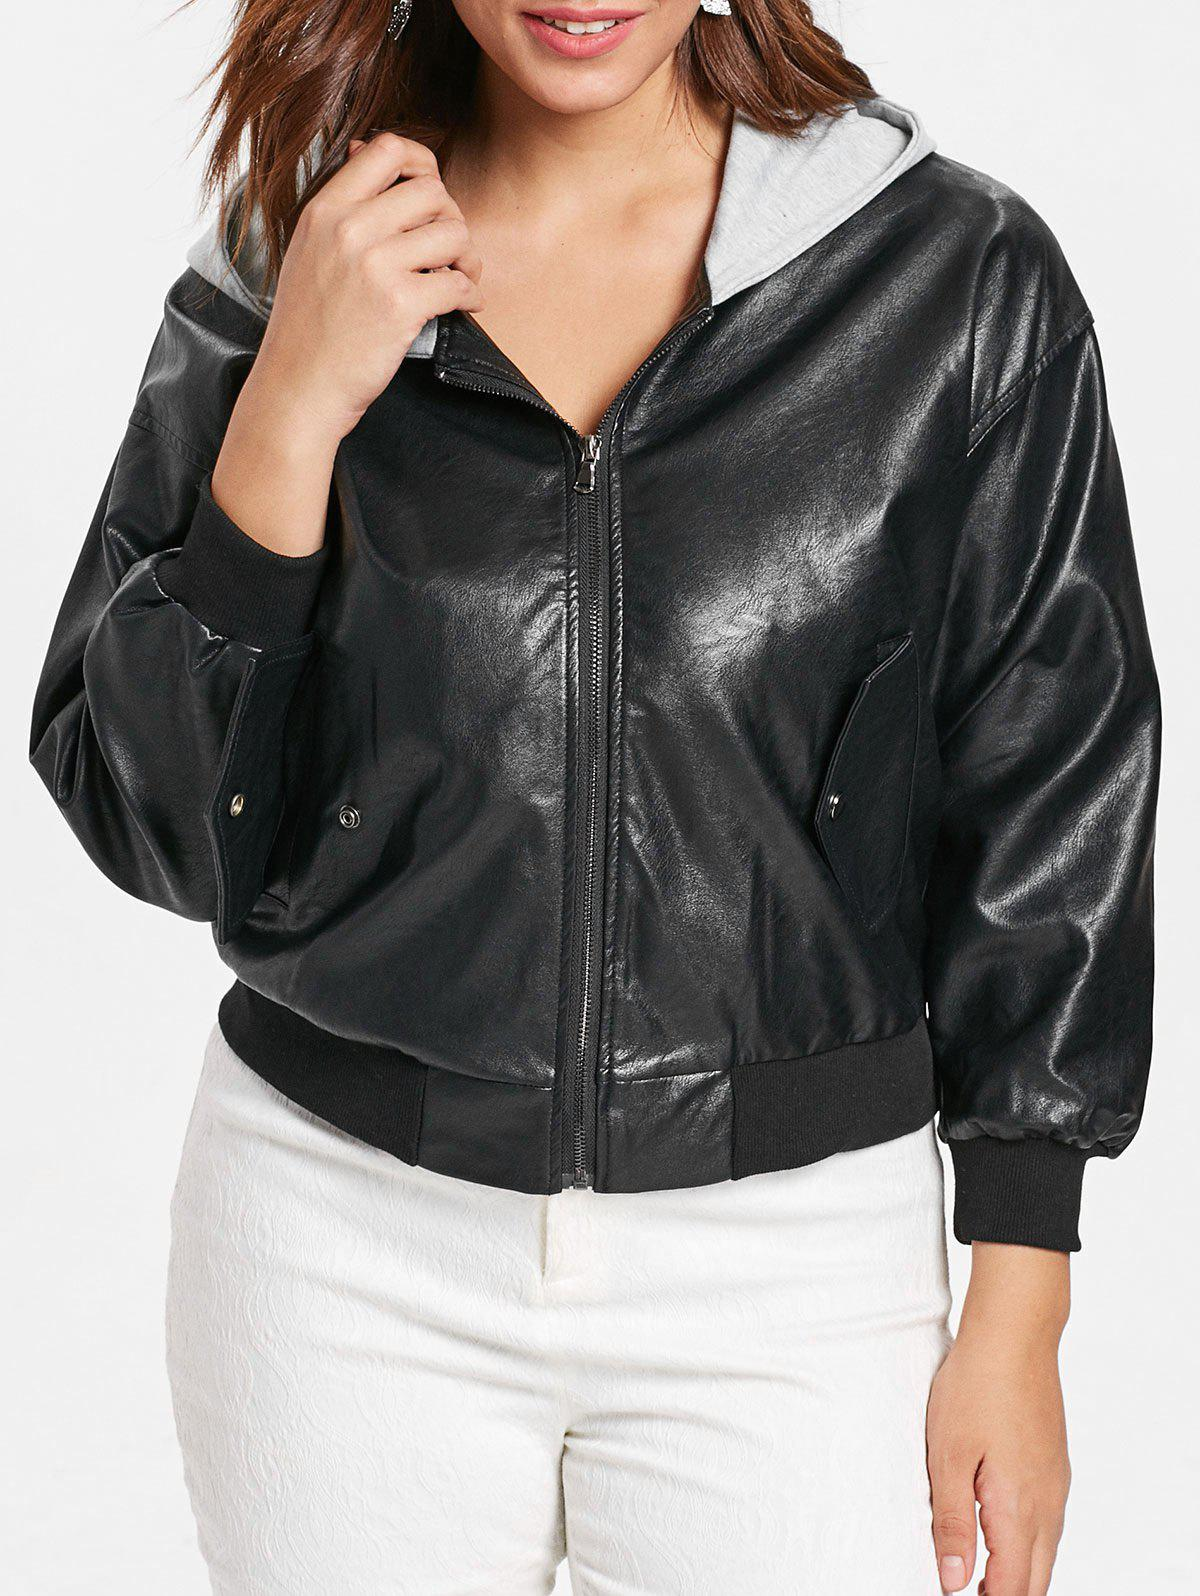 Chic Front Pockets Plus Size Faux Leather Zip Jacket